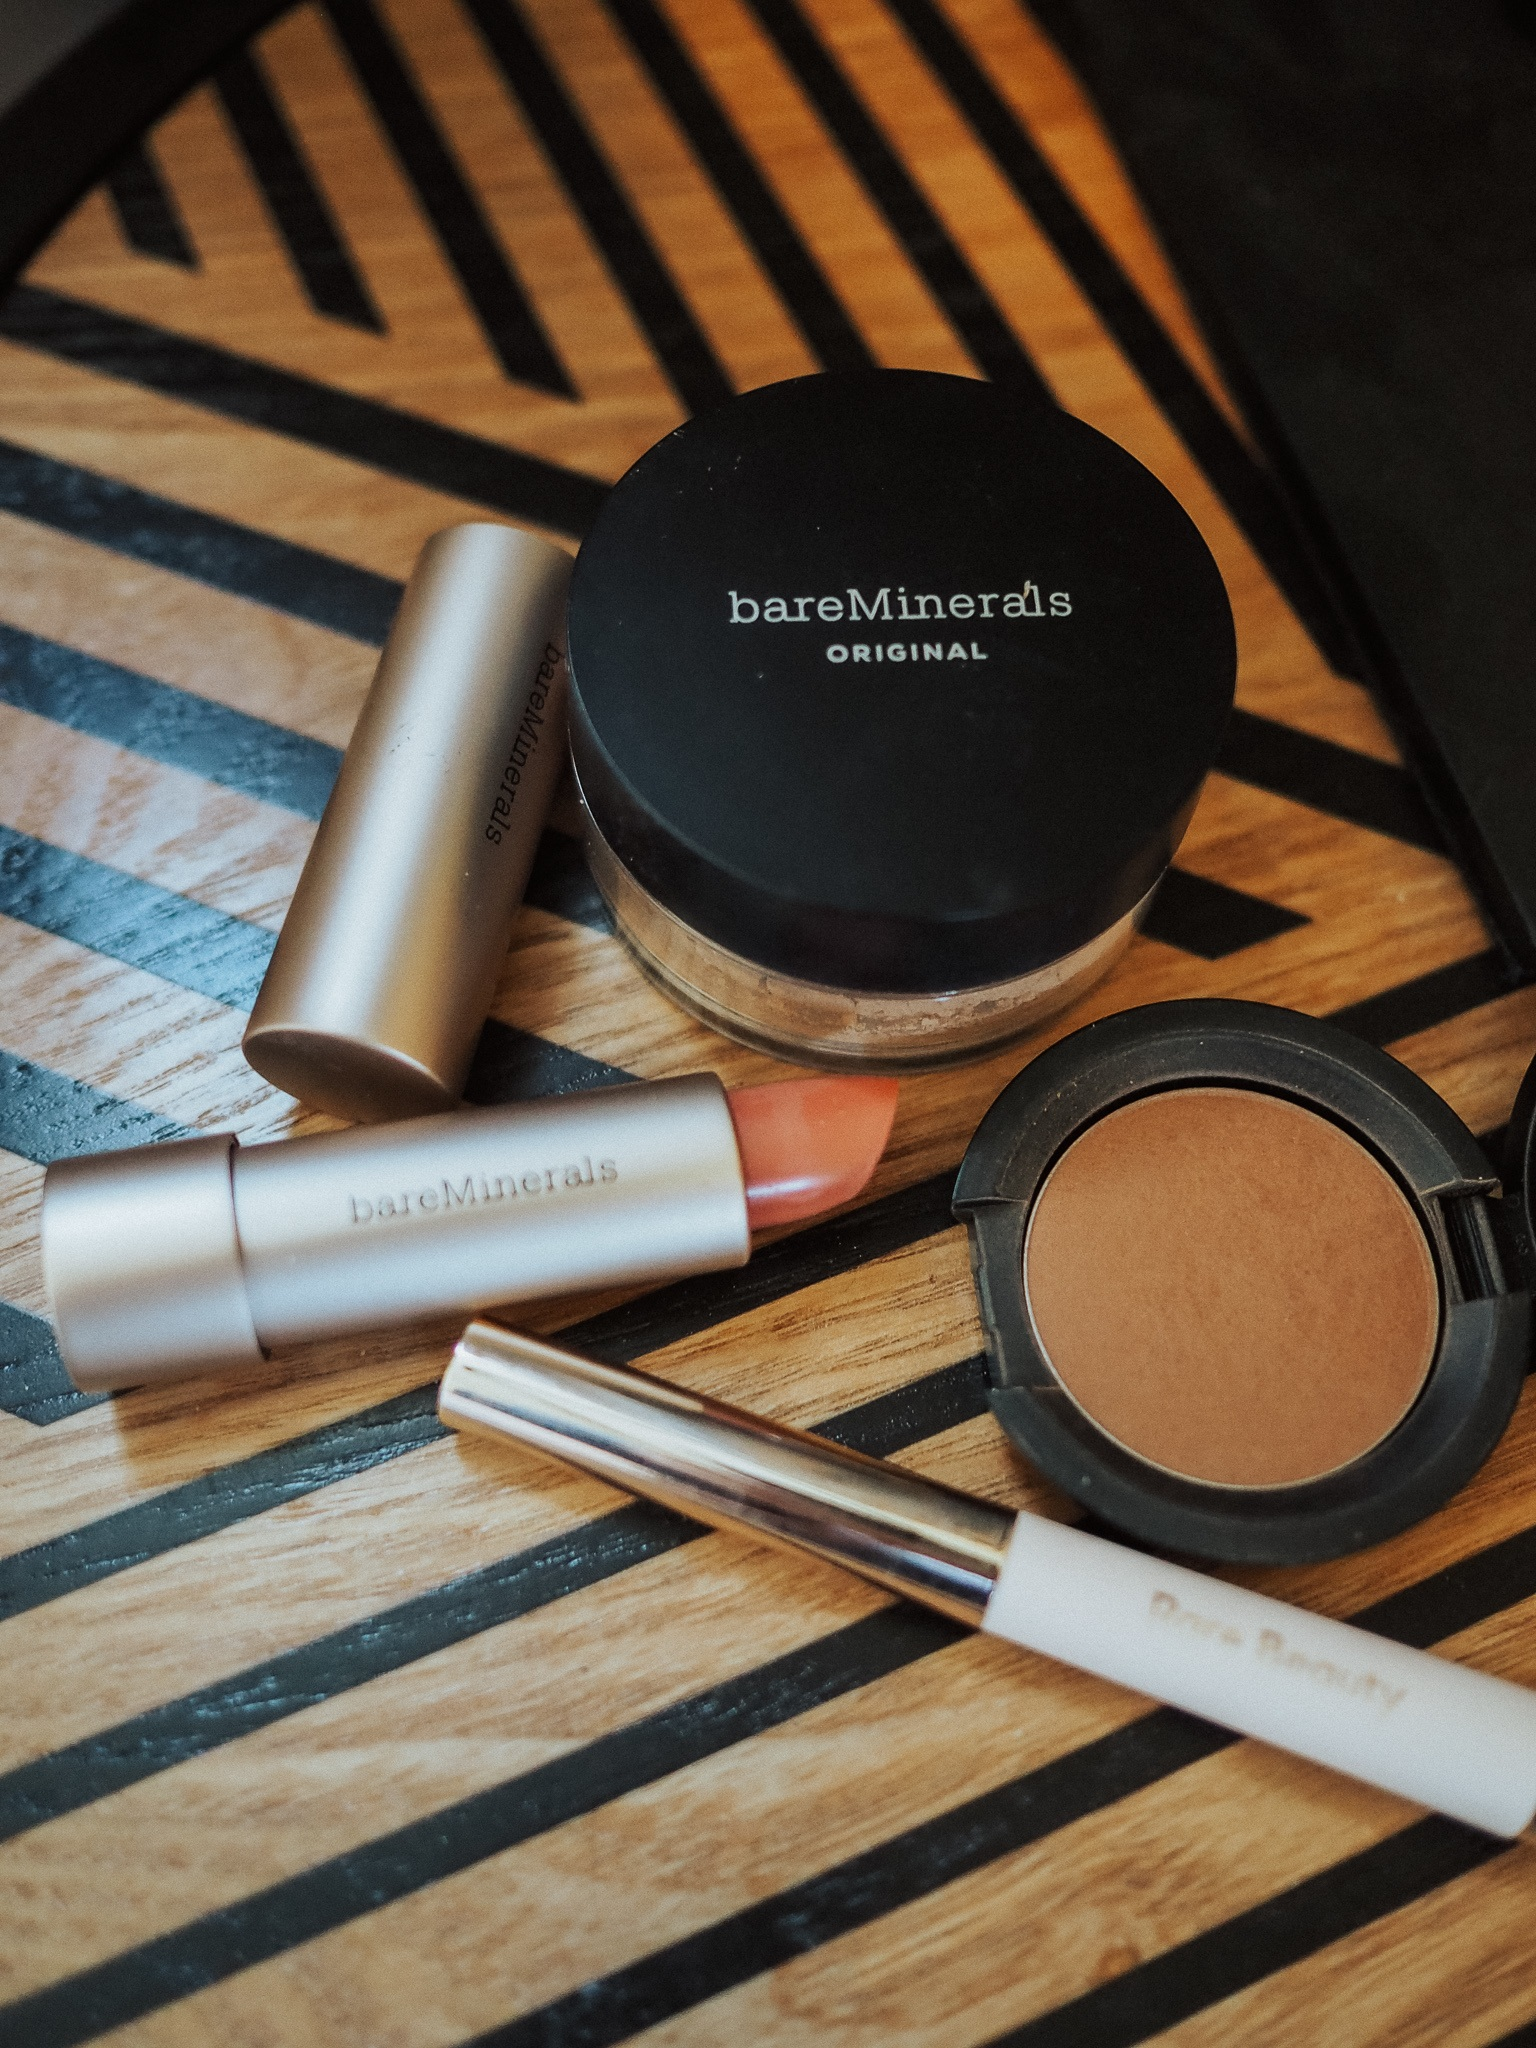 Find out all the details, dates, promo codes, and top picks from the VIB Sephora Sale in 2020 - all in this handy blog post!